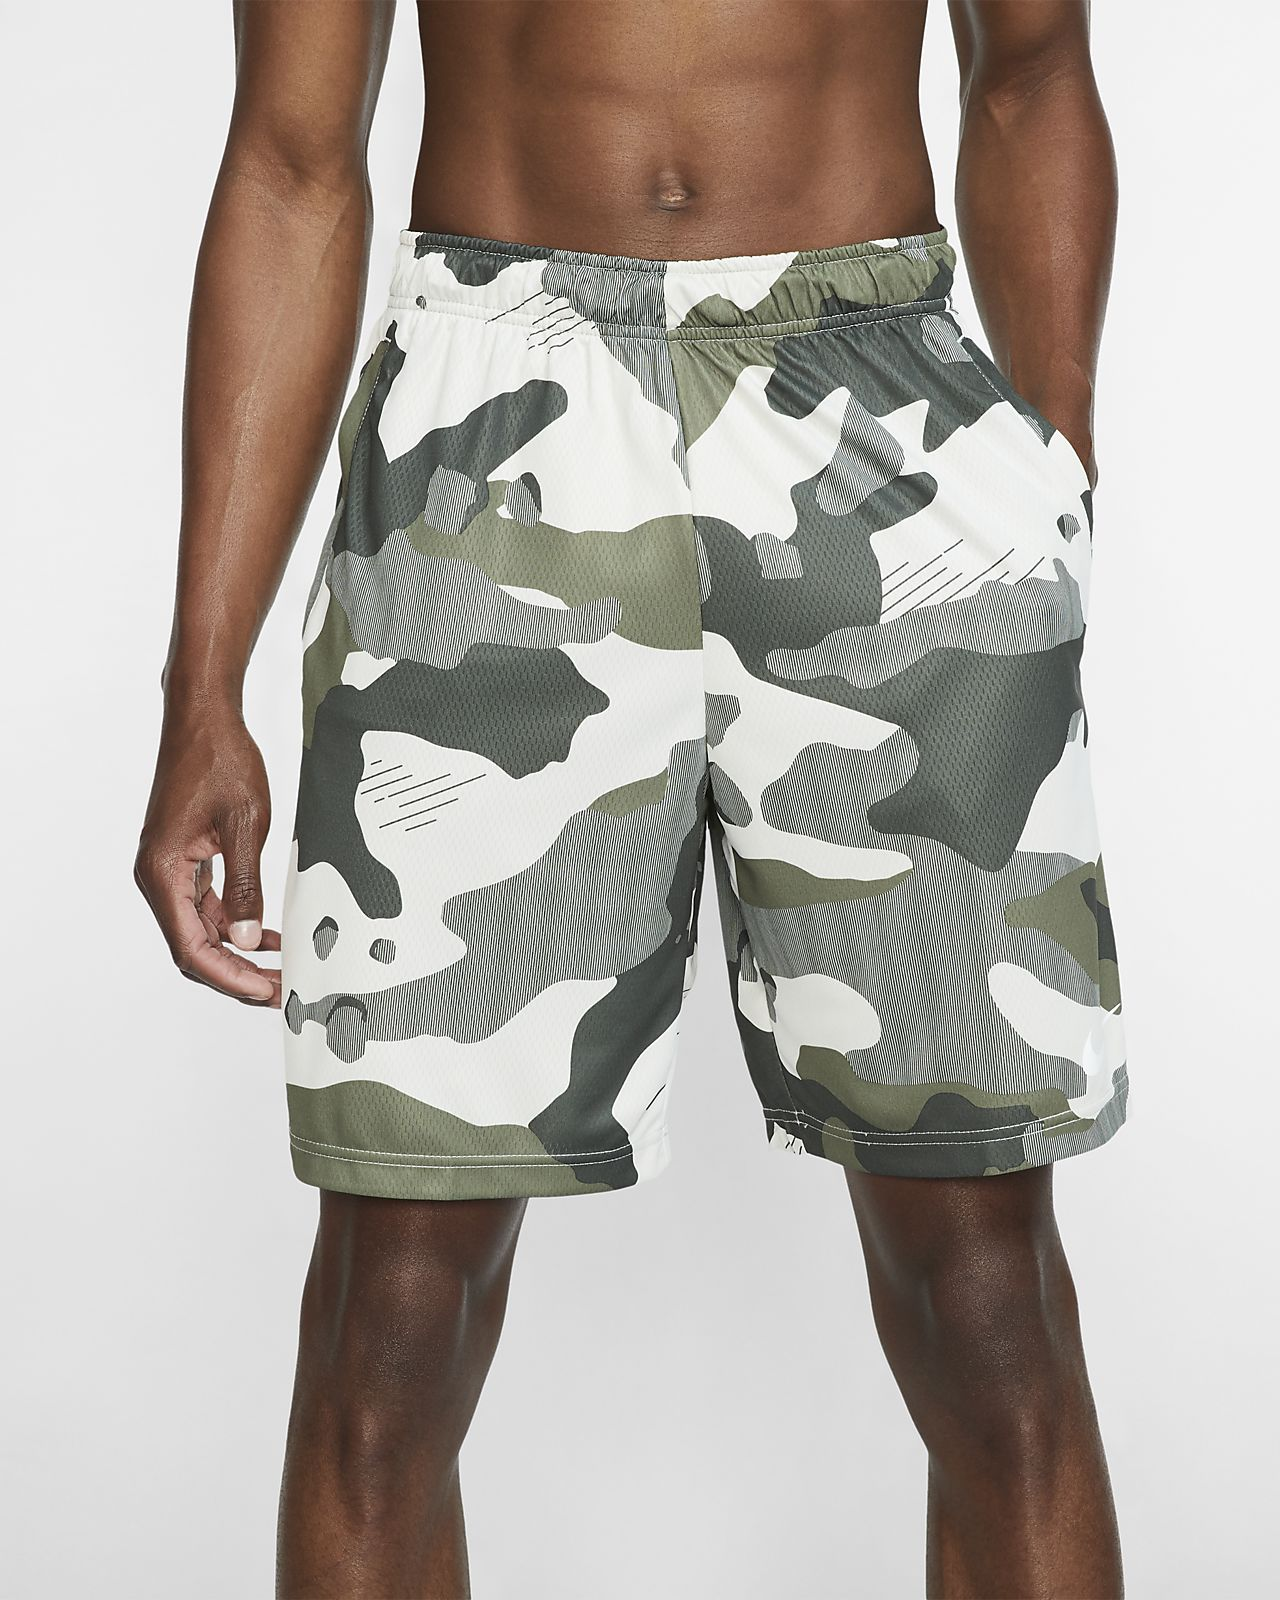 Short de training camouflage Nike Dri-FIT pour Homme